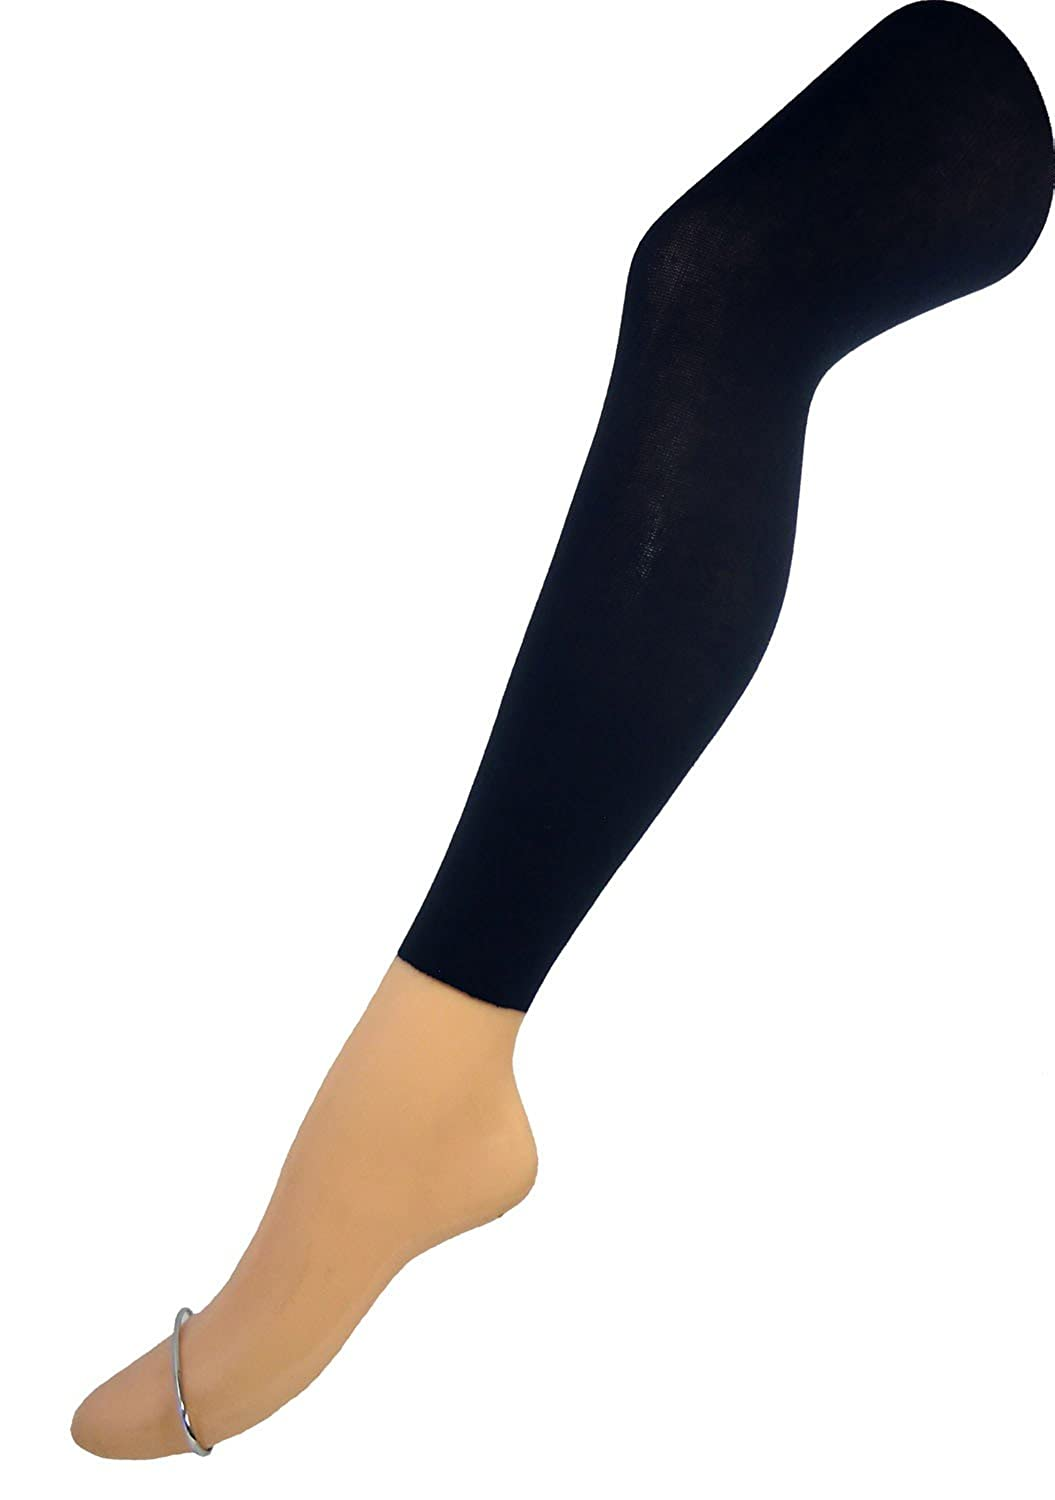 Shimasocks Damen Strickleggings